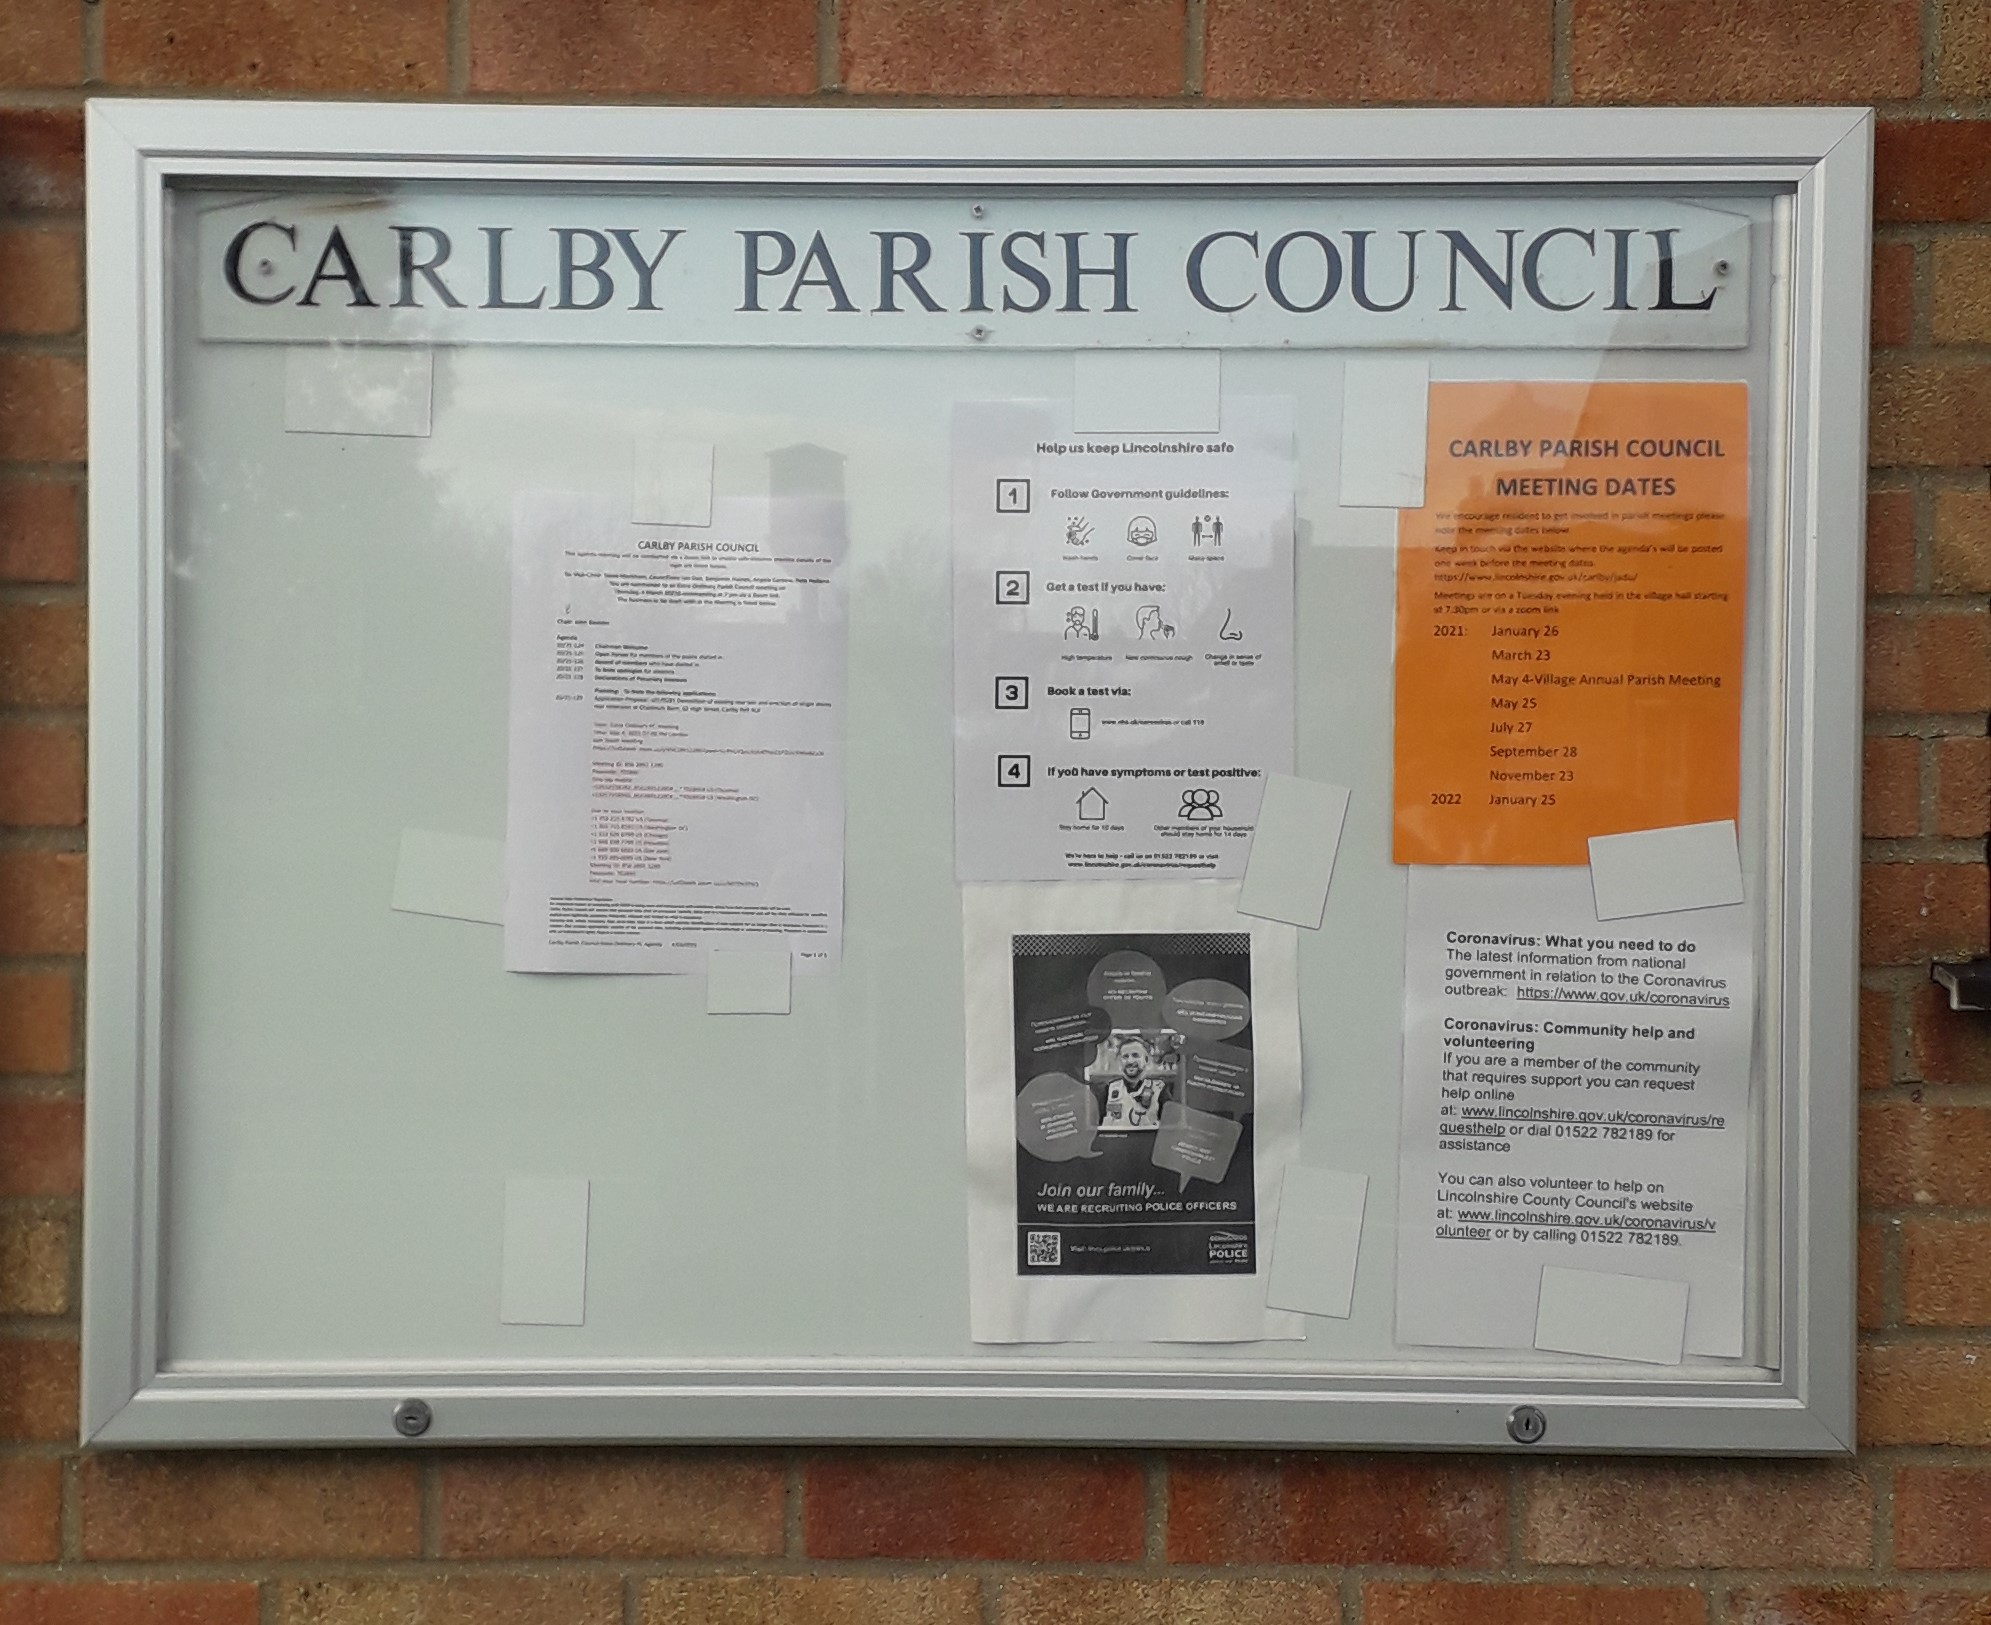 picture of noticeboard